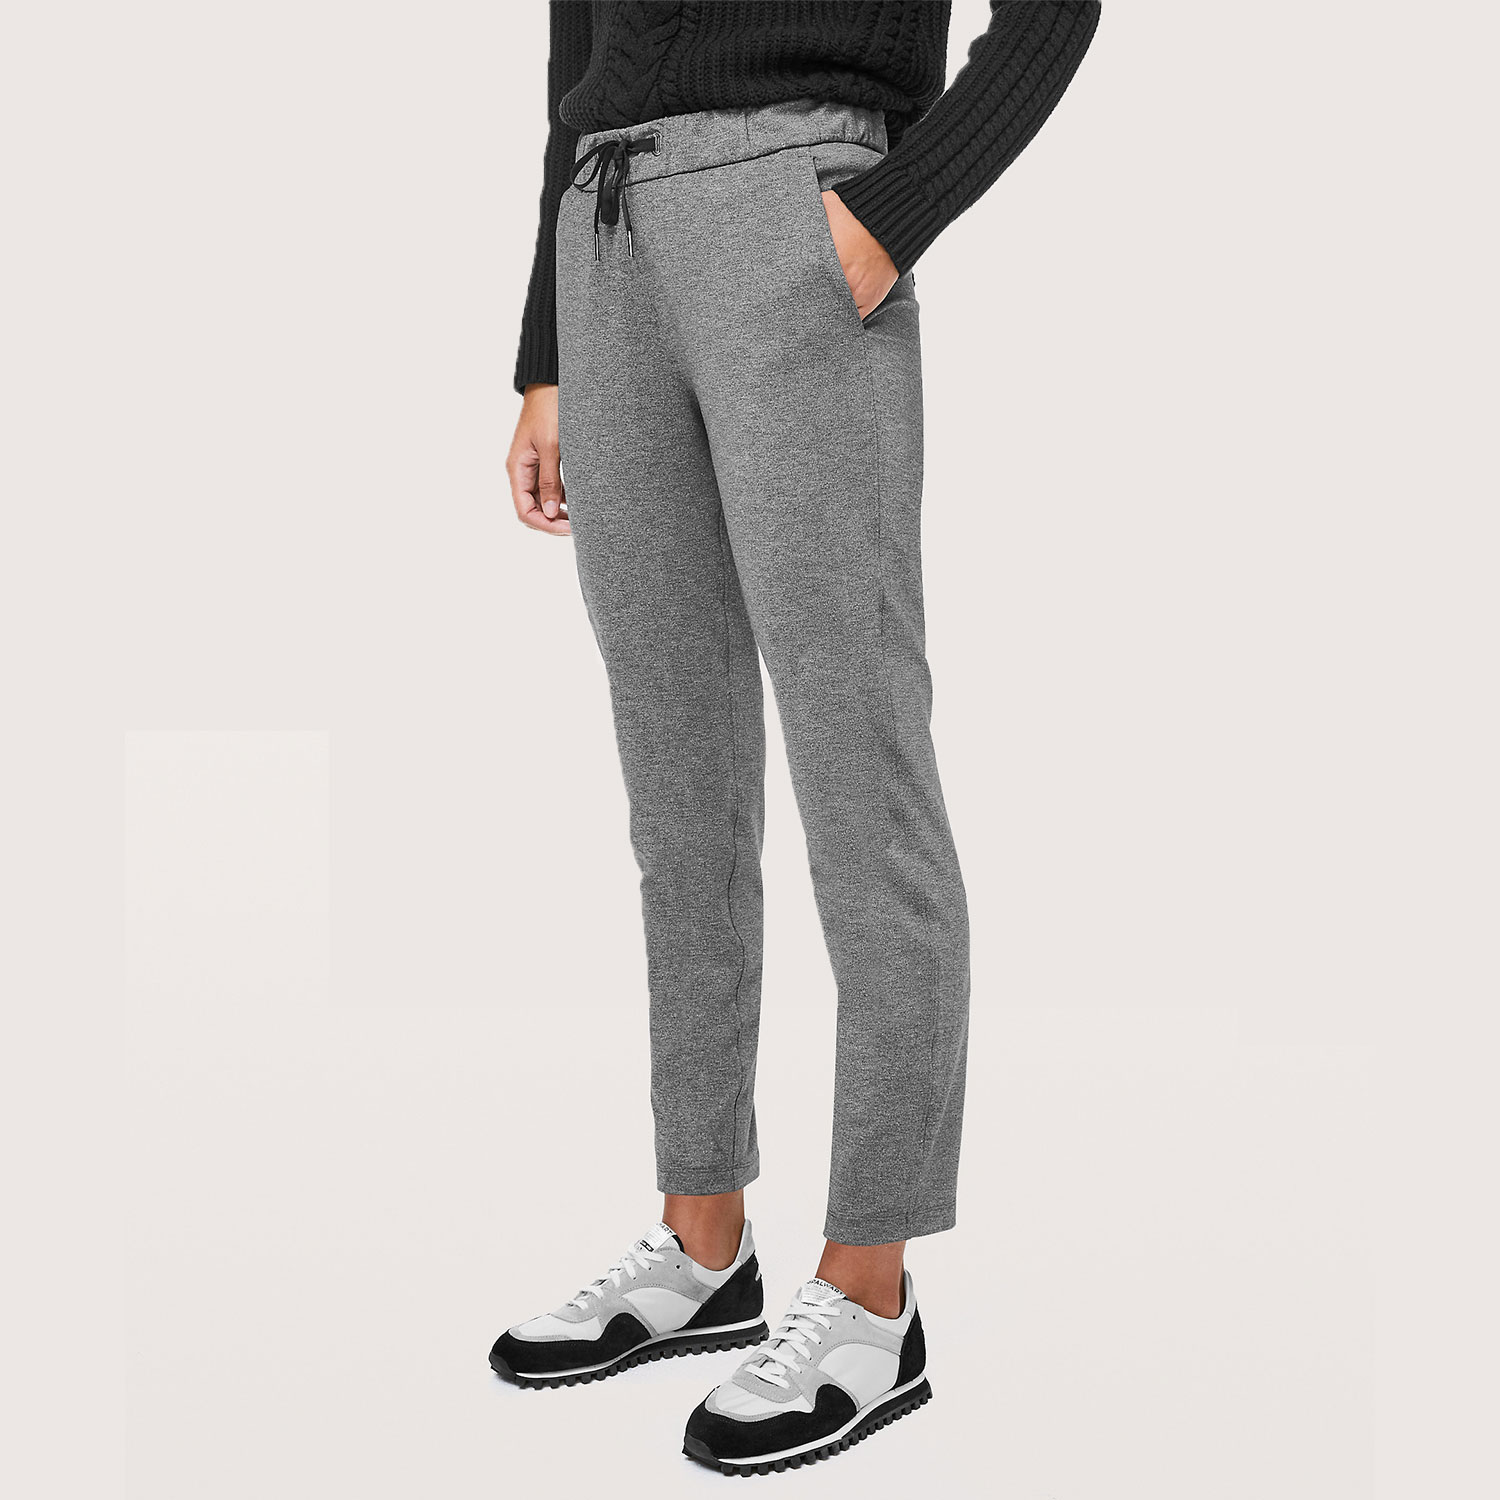 On the Fly Pant Full Length